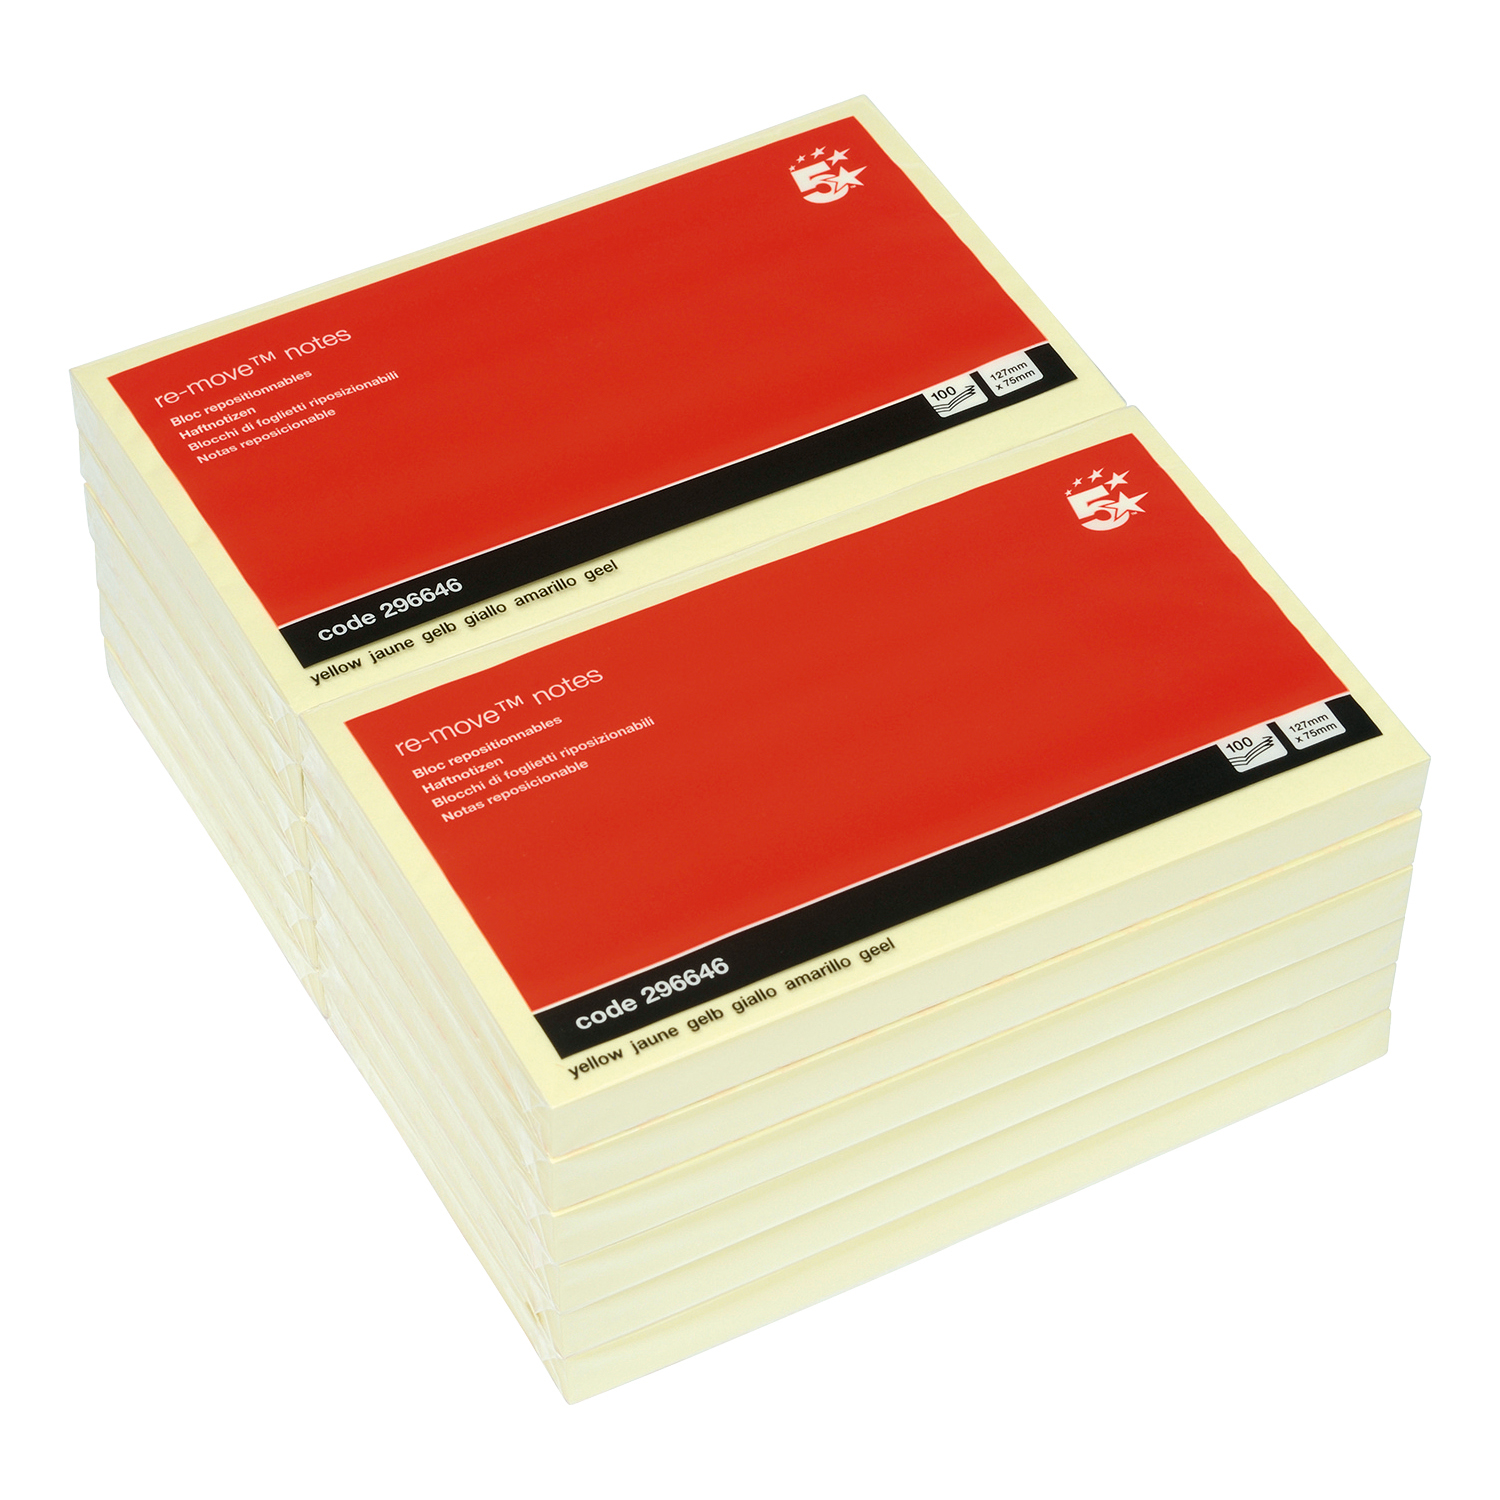 5 Star Office Re-Move Notes Repositionable Pad of 100 Sheets 76x127mm Yellow Pack 12